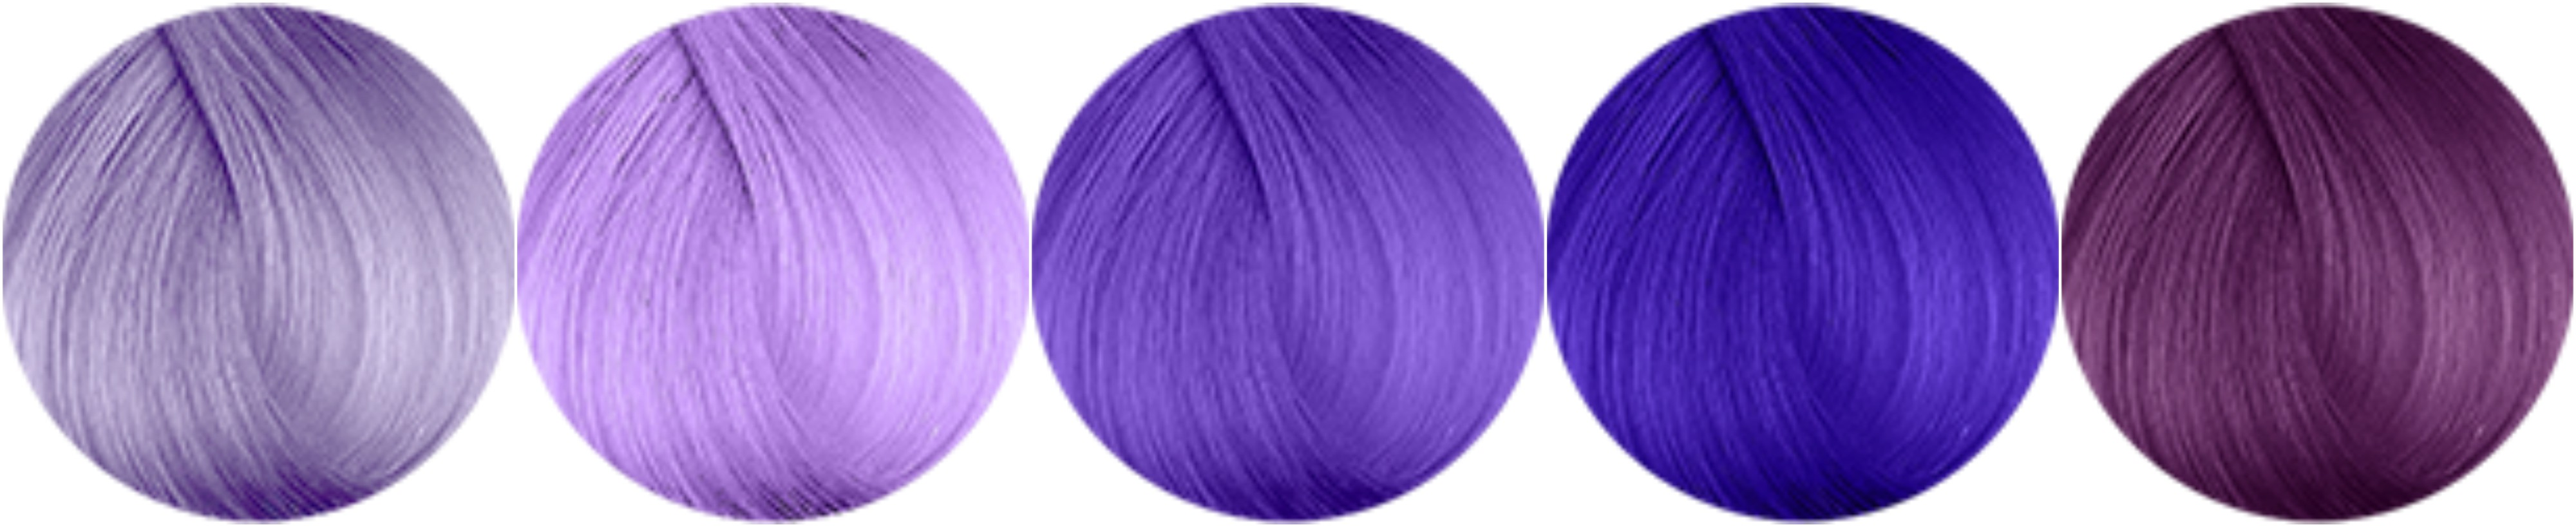 purple hair dye brands your guide to colours